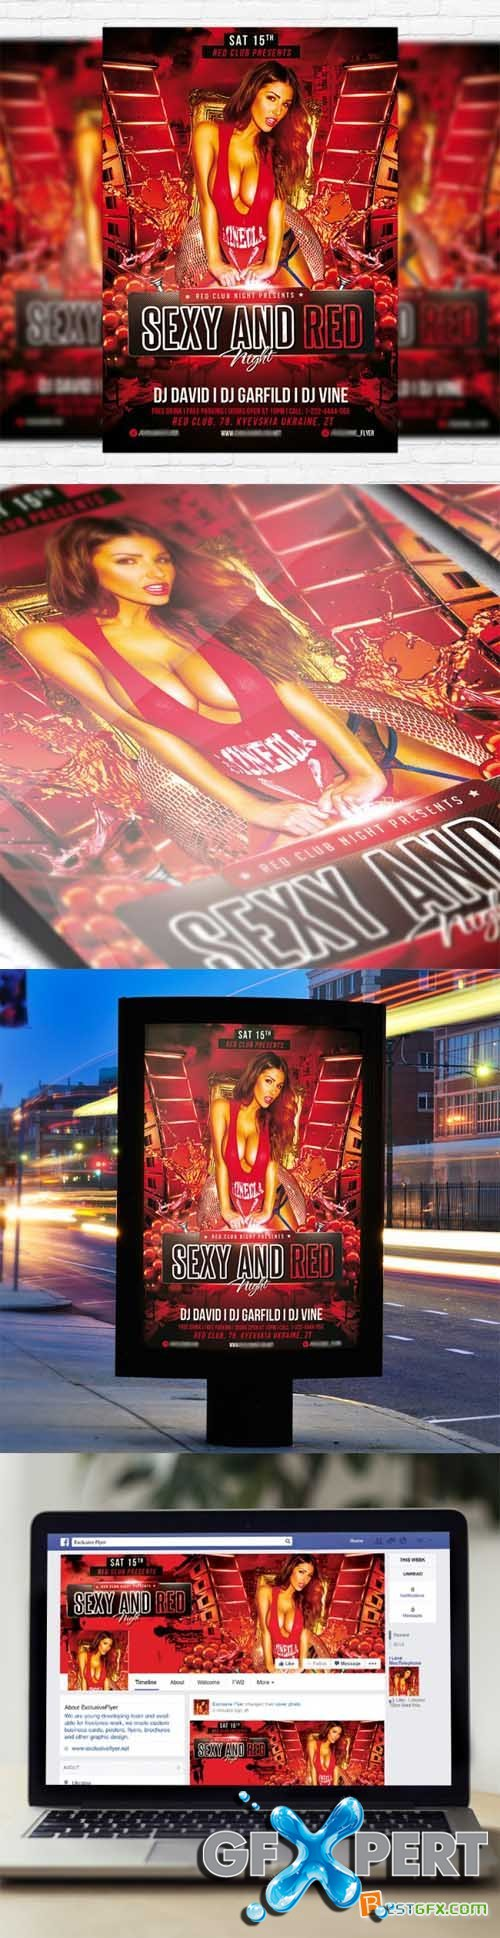 Flyer Template - Sexy and Red + Facebook Cover